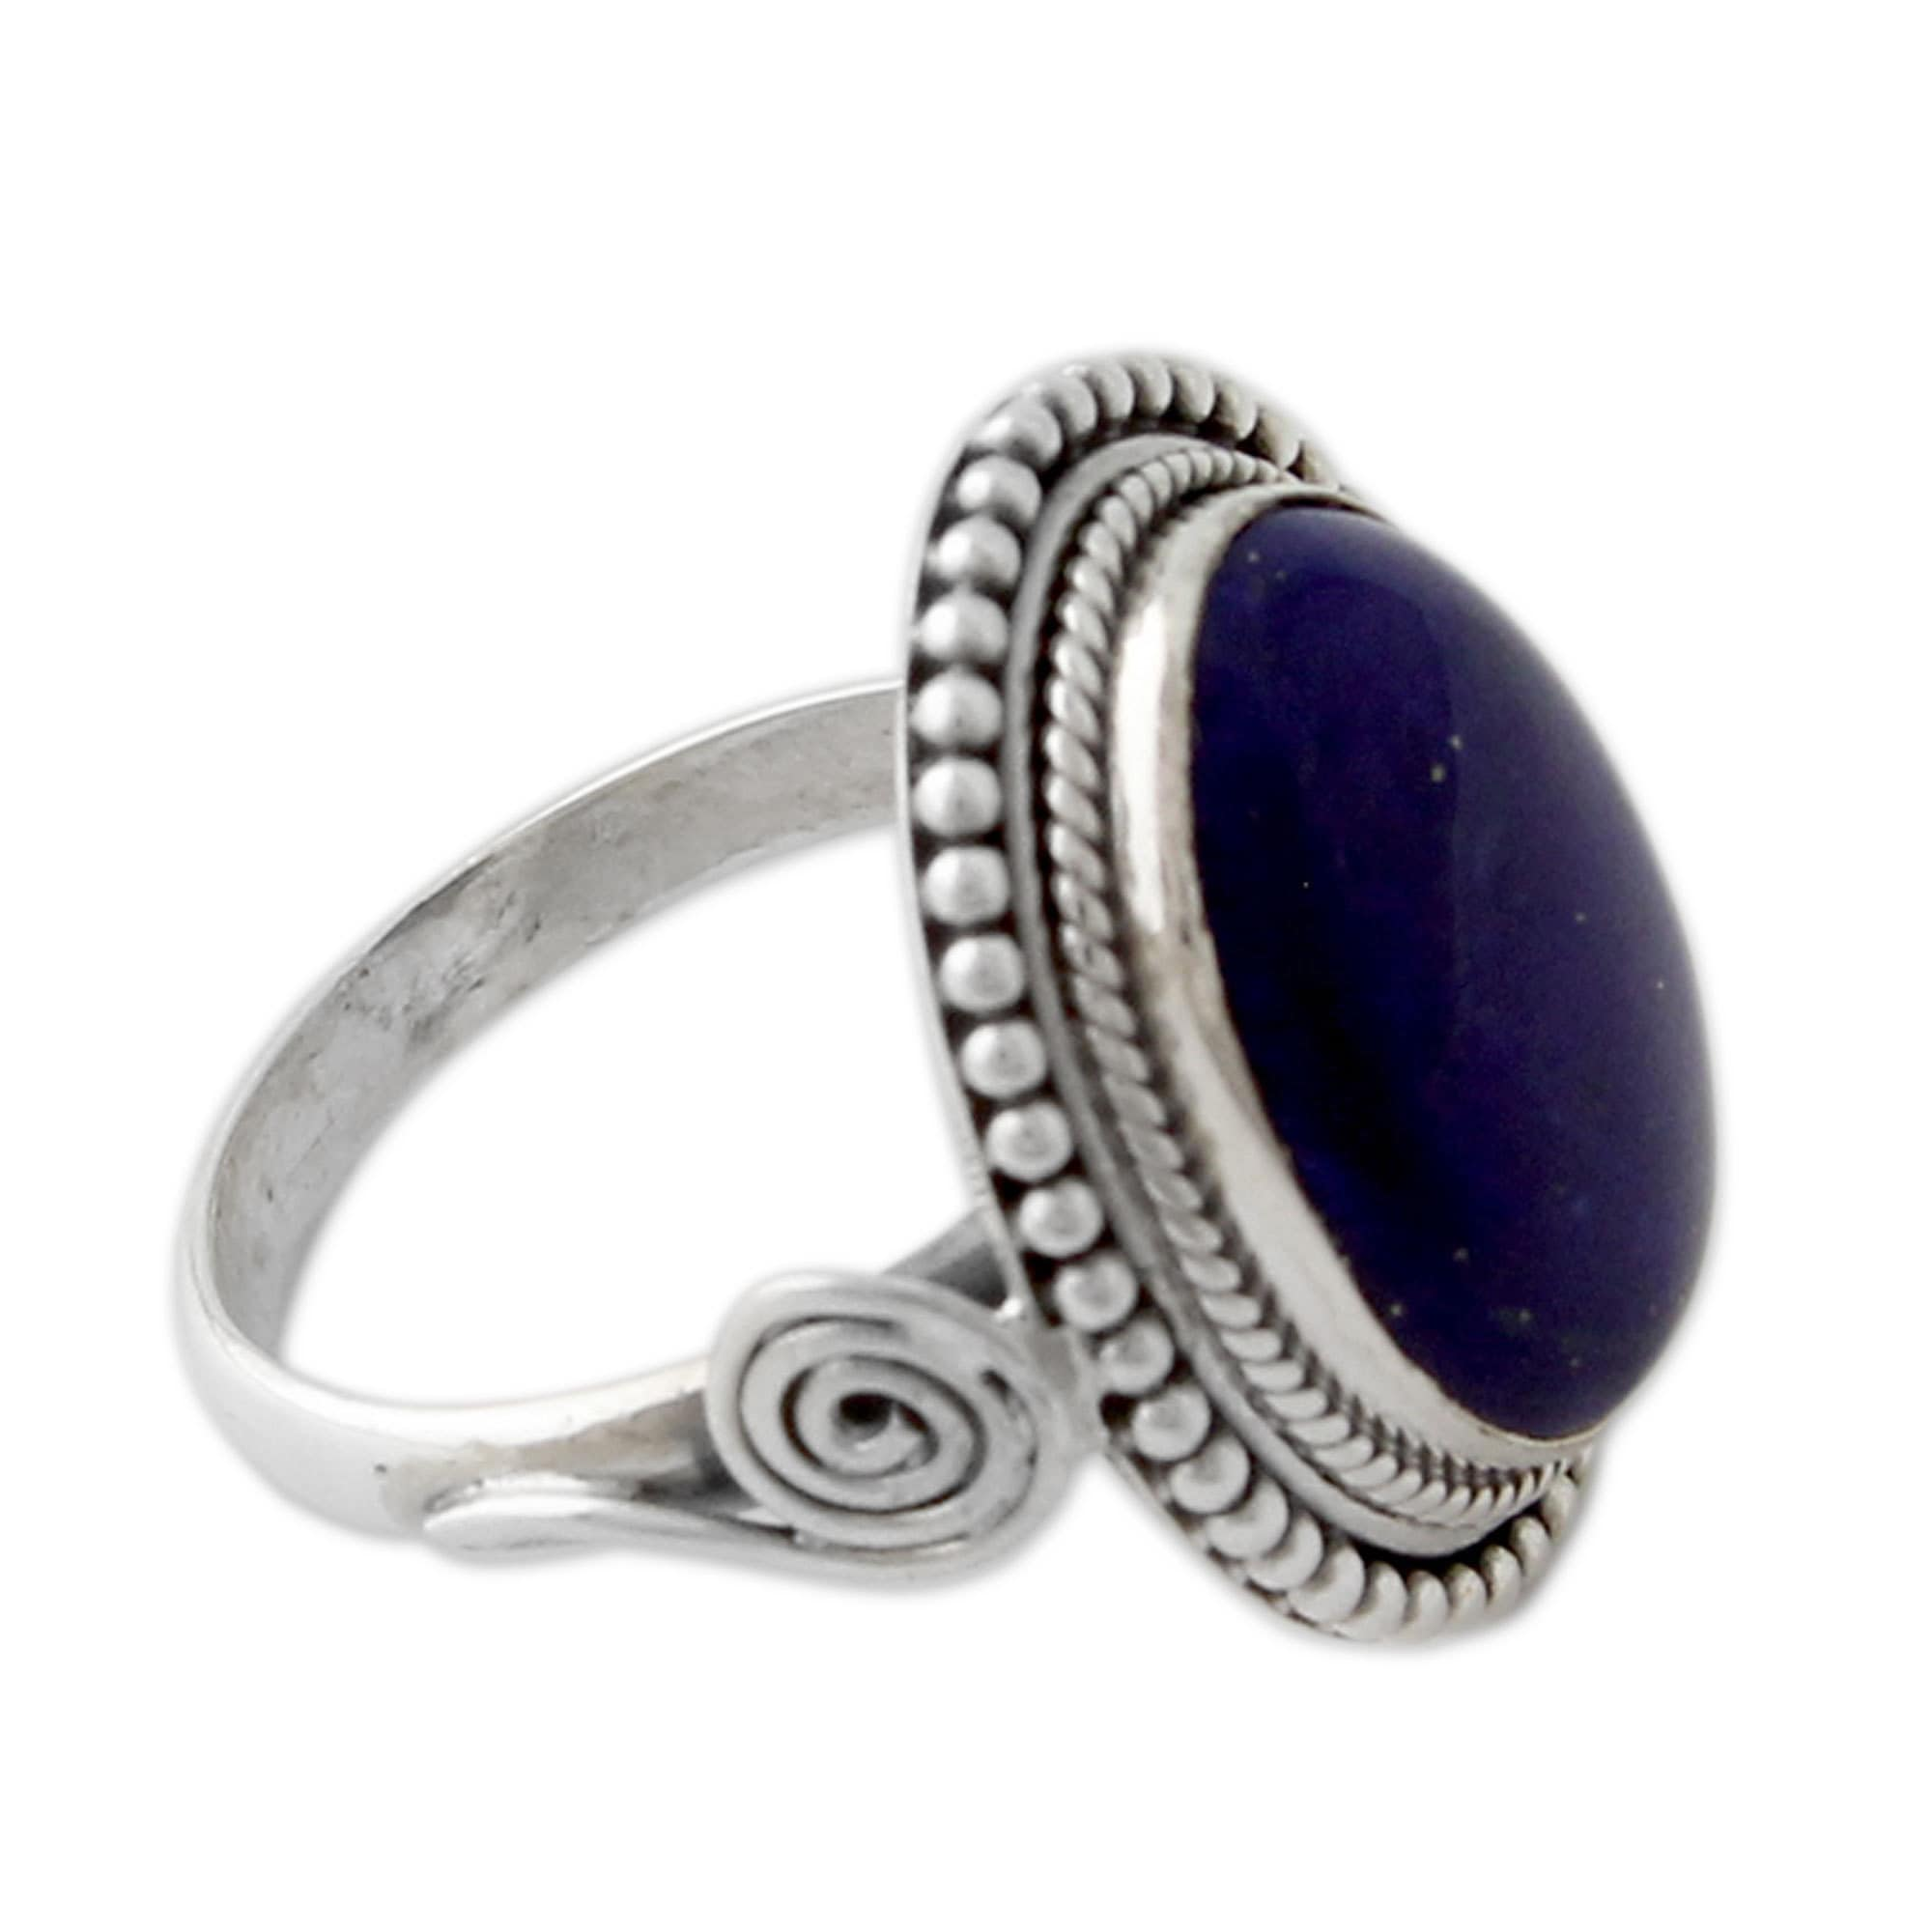 rings online getsubject stone blue product aeproduct still cheap fashion royal silver here jewelry